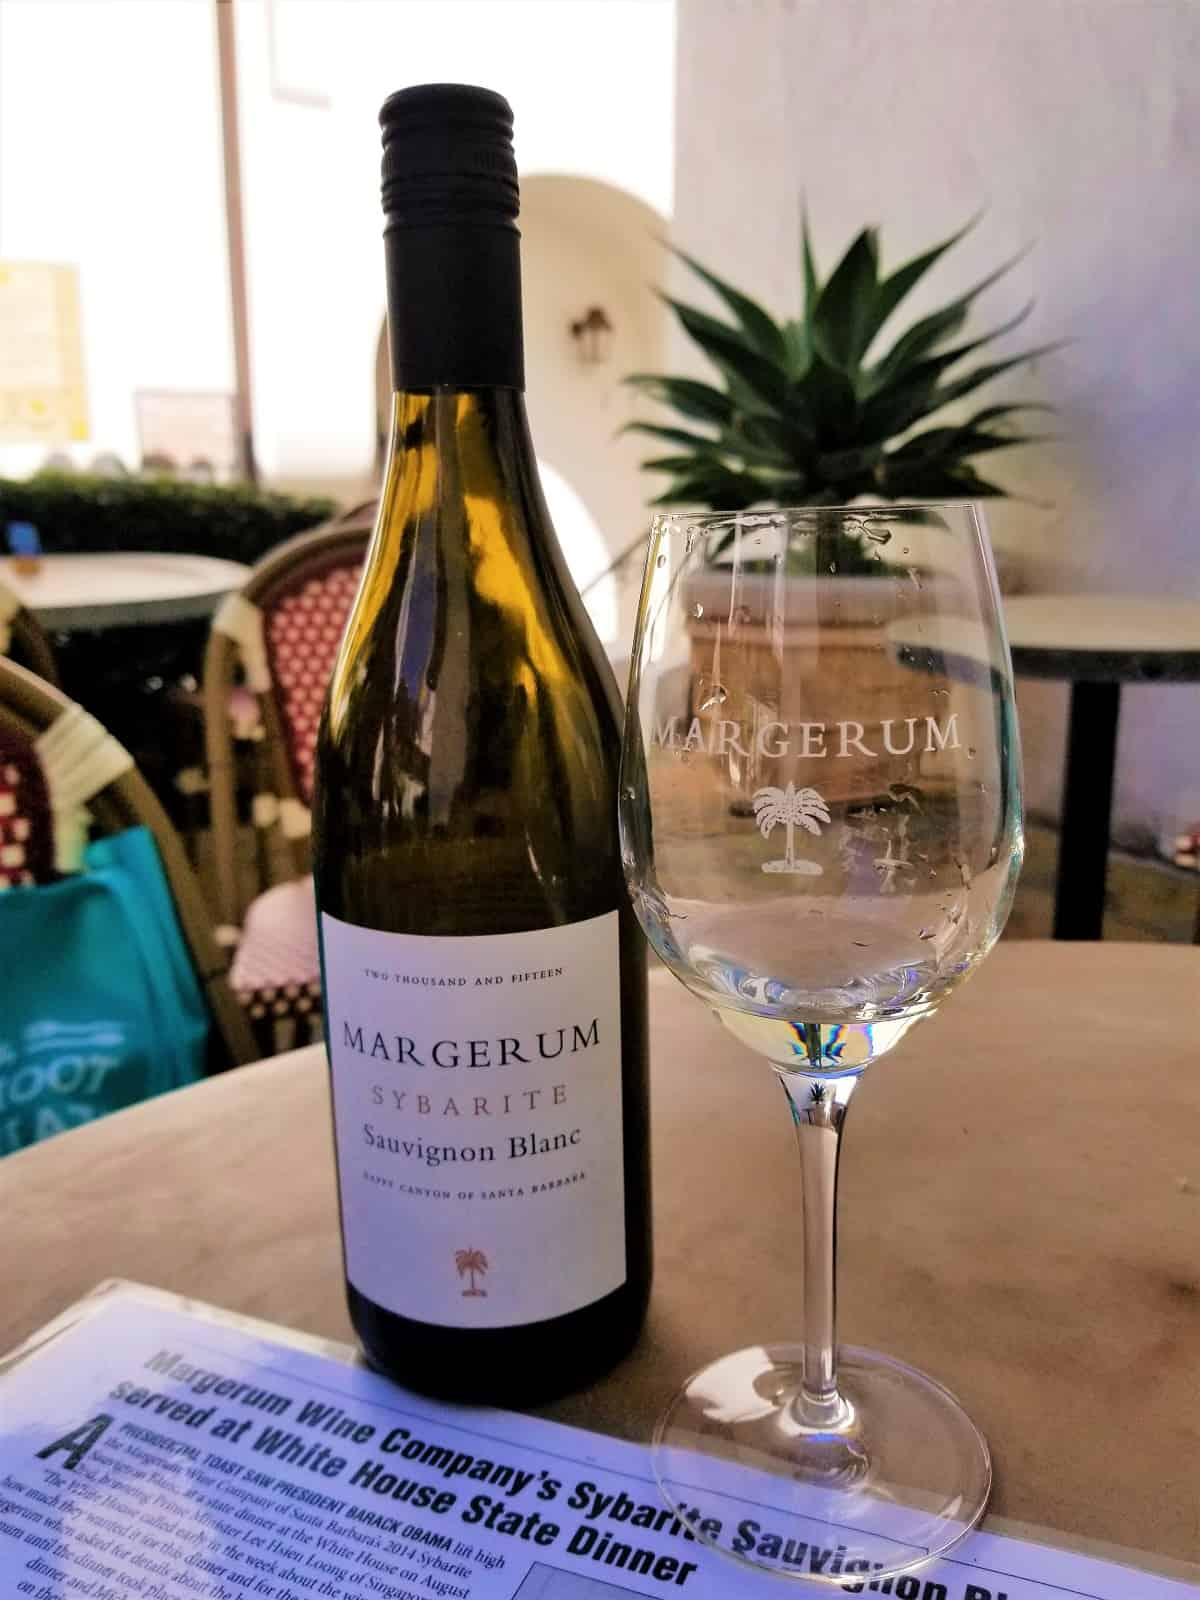 Sauvignon Blanc served at the White House from Bottle of Syrah from Margerum Wine Company